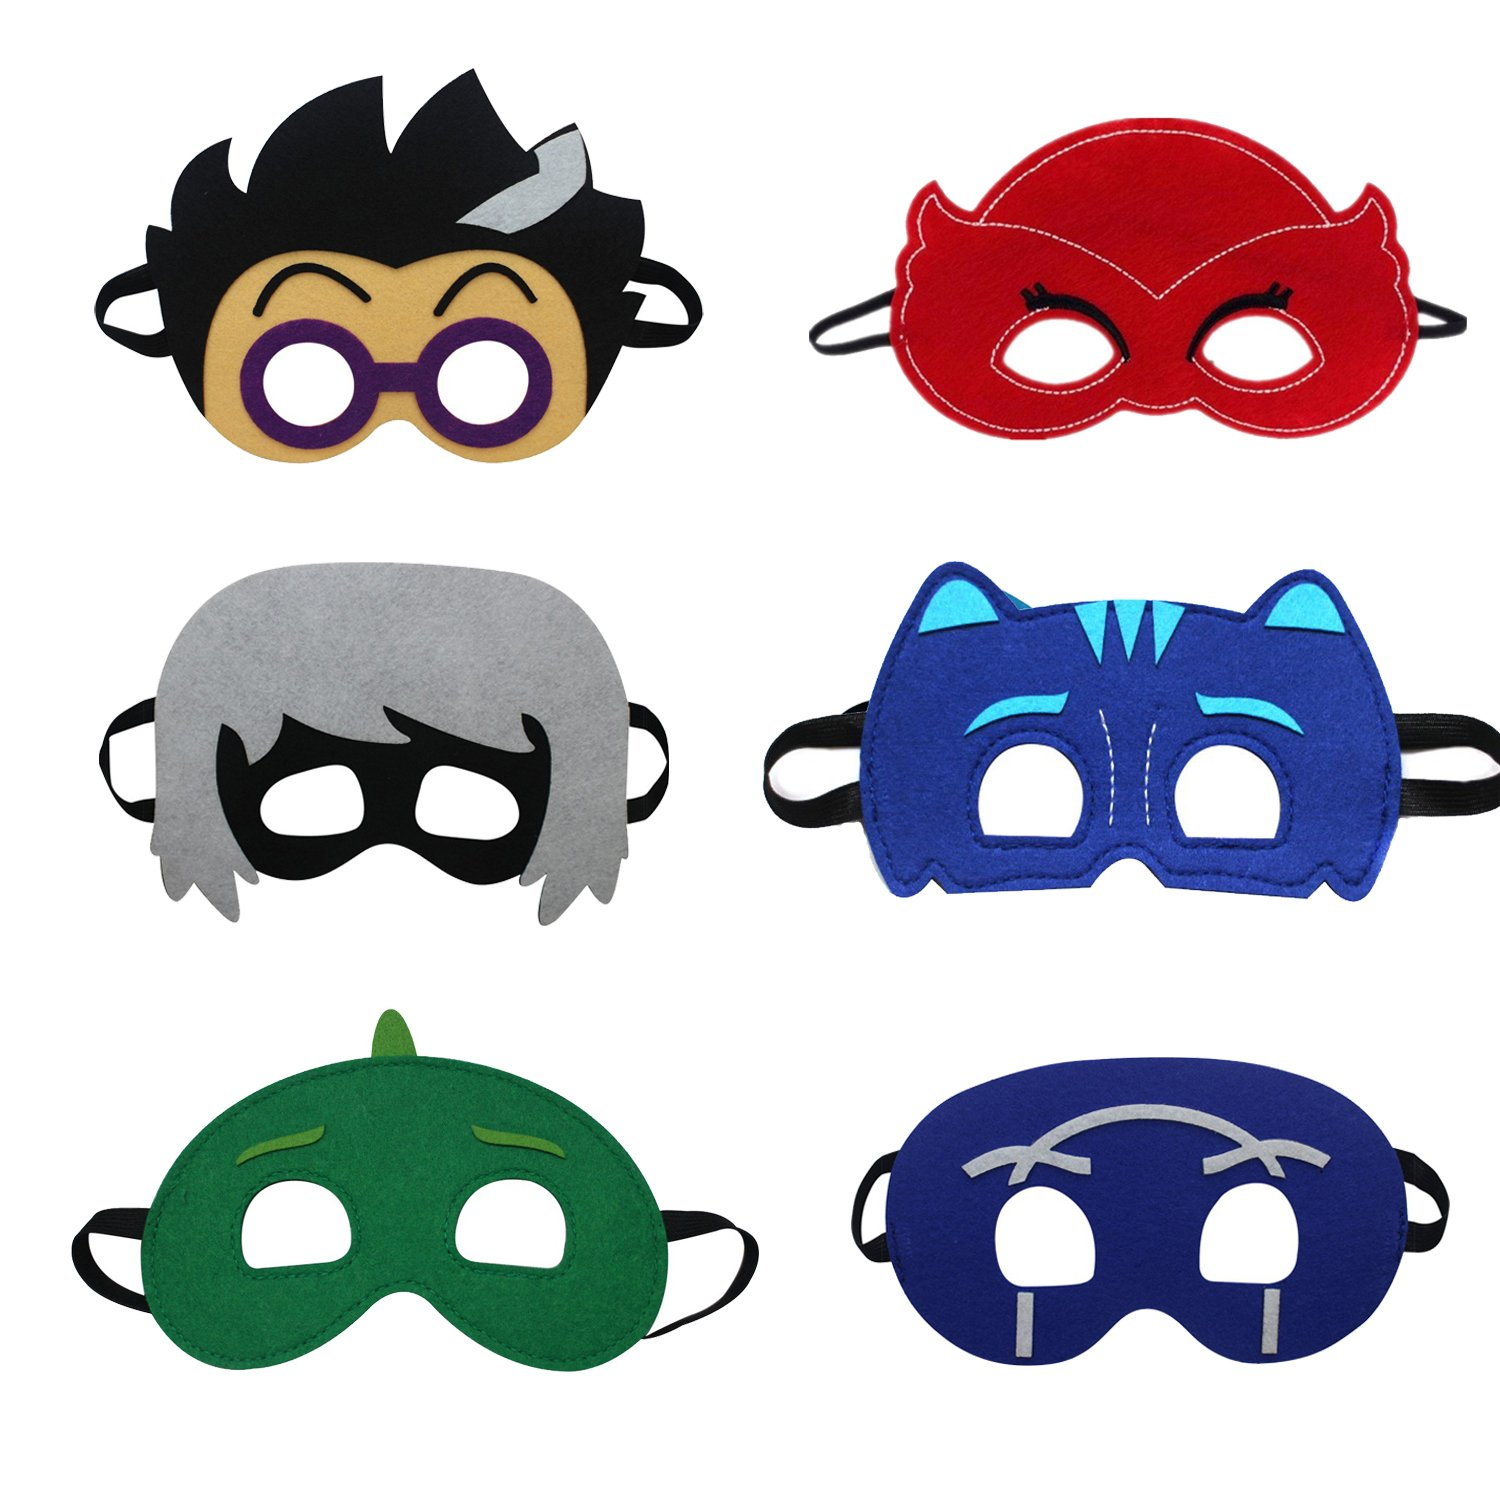 Laudmu Kids Cartoon Hero Party Dress Up Costumes Mask - pack of 6